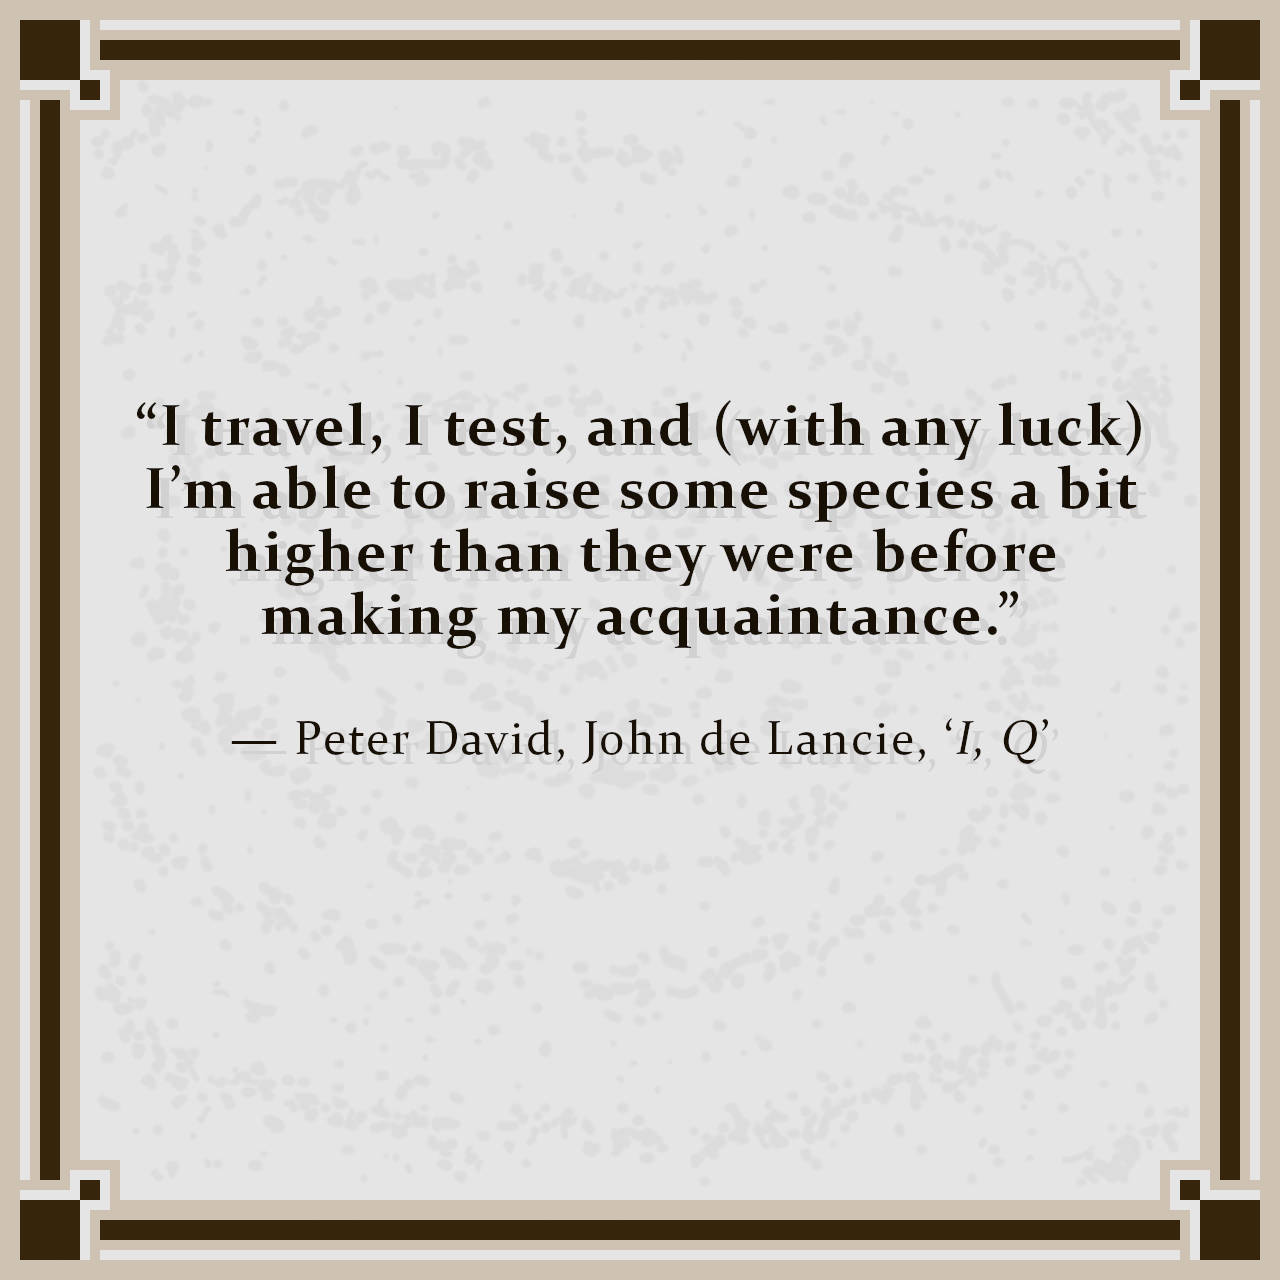 """""""I travel, I test, and (with any luck) I'm able to raise some species a bit higher than they were before making my acquaintance."""" — Peter David, John de Lancie, 'I, Q'"""